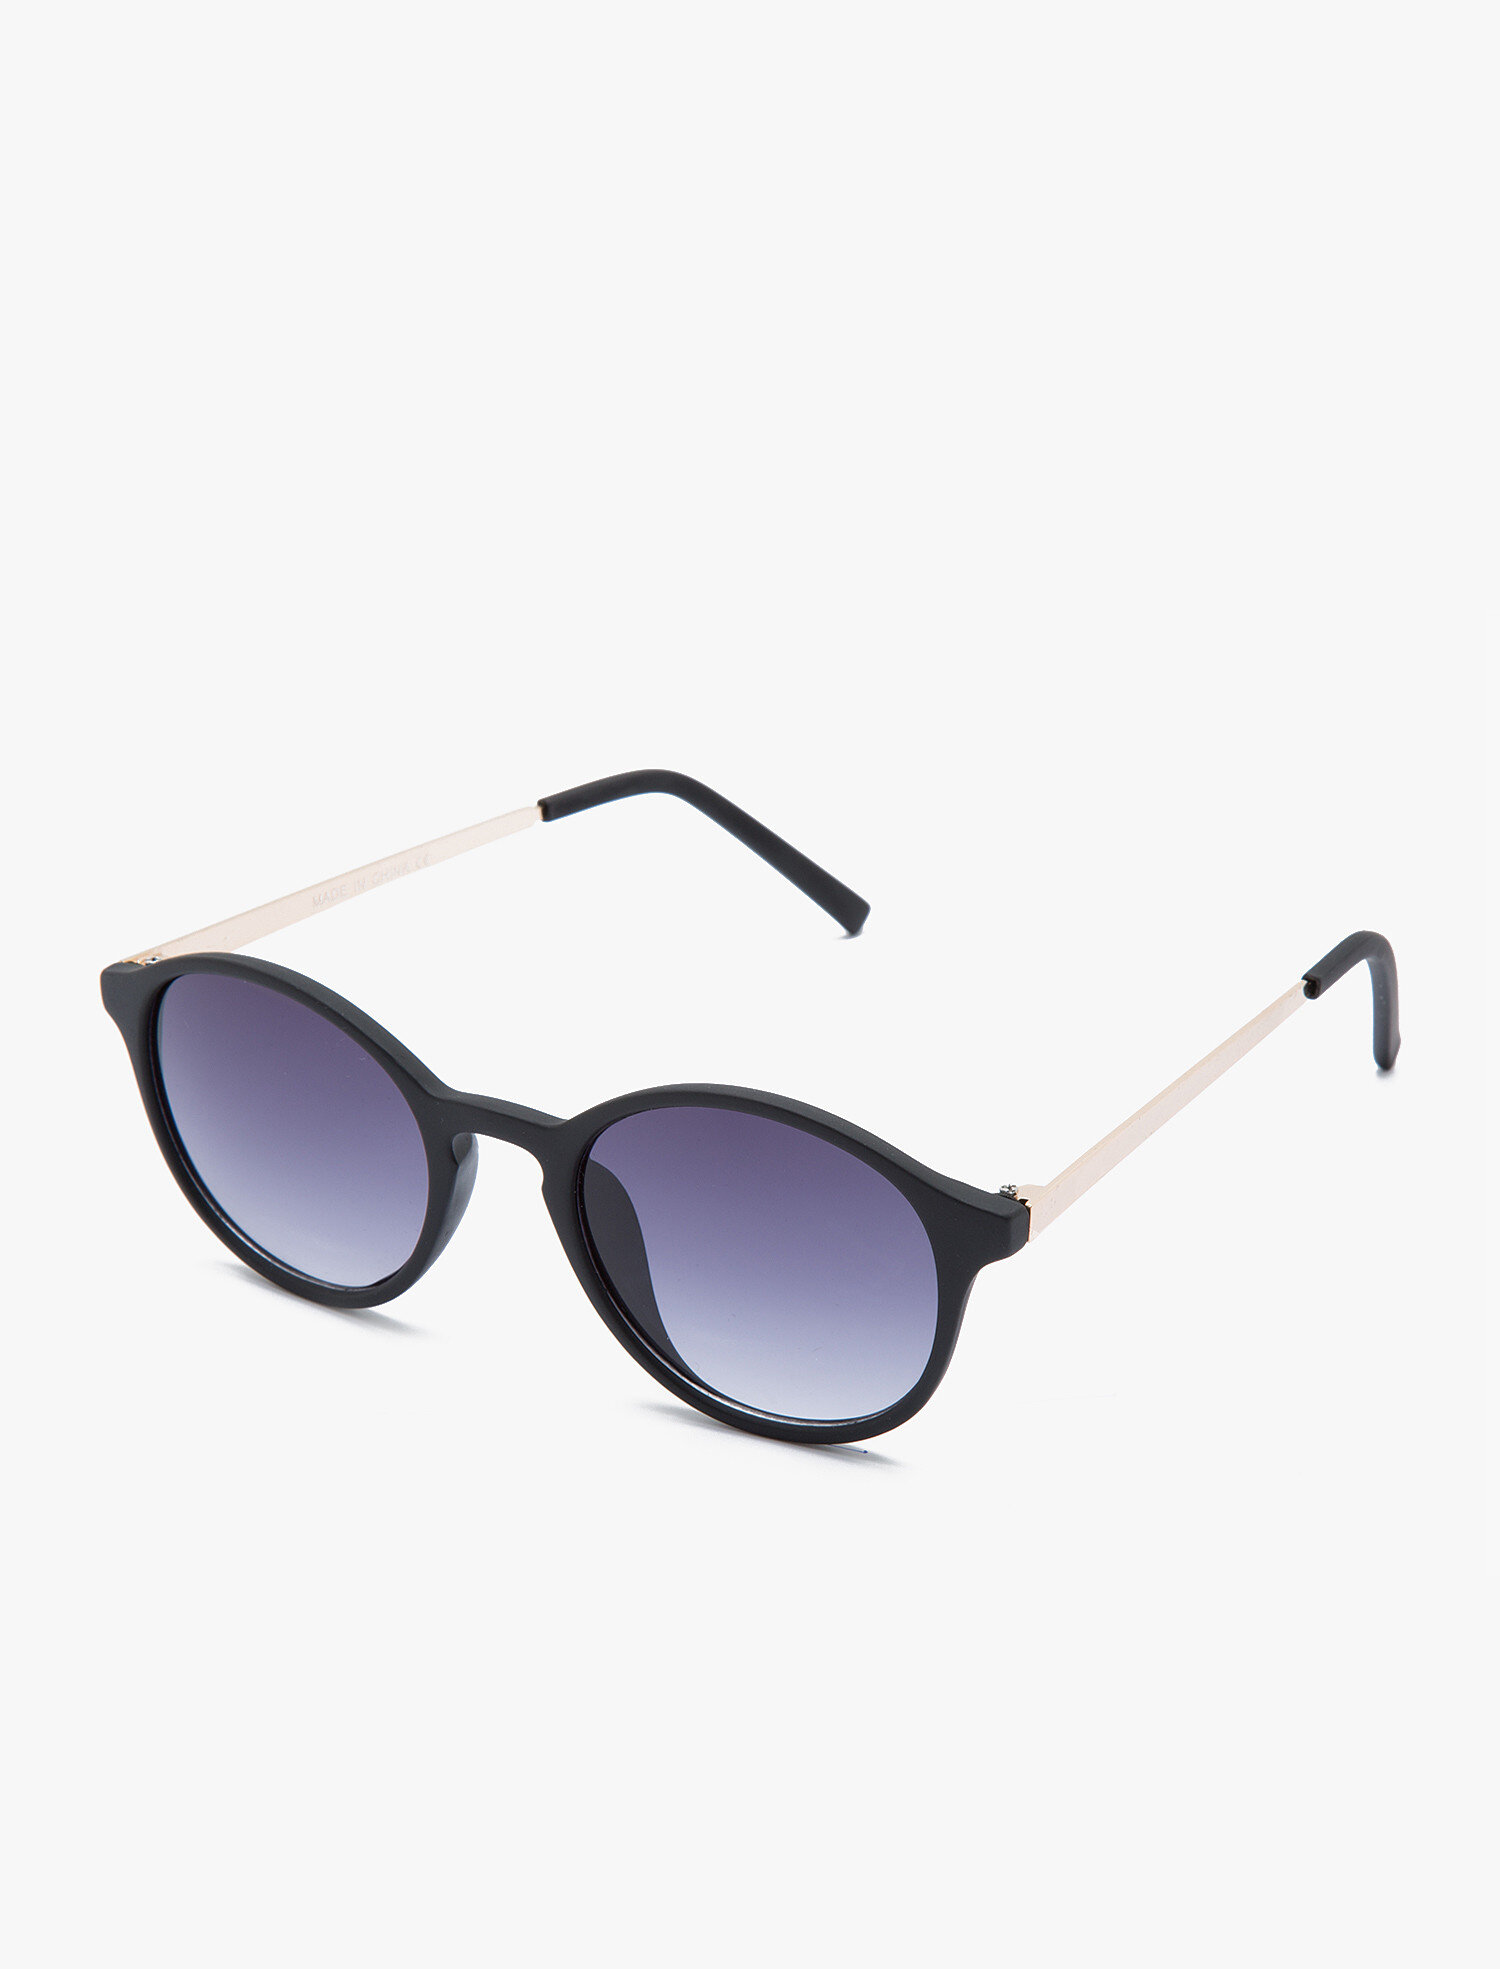 Buy the latest sunglasses women cheap shop fashion style with free shipping, and check out our daily updated new arrival sunglasses women at flip13bubble.tk